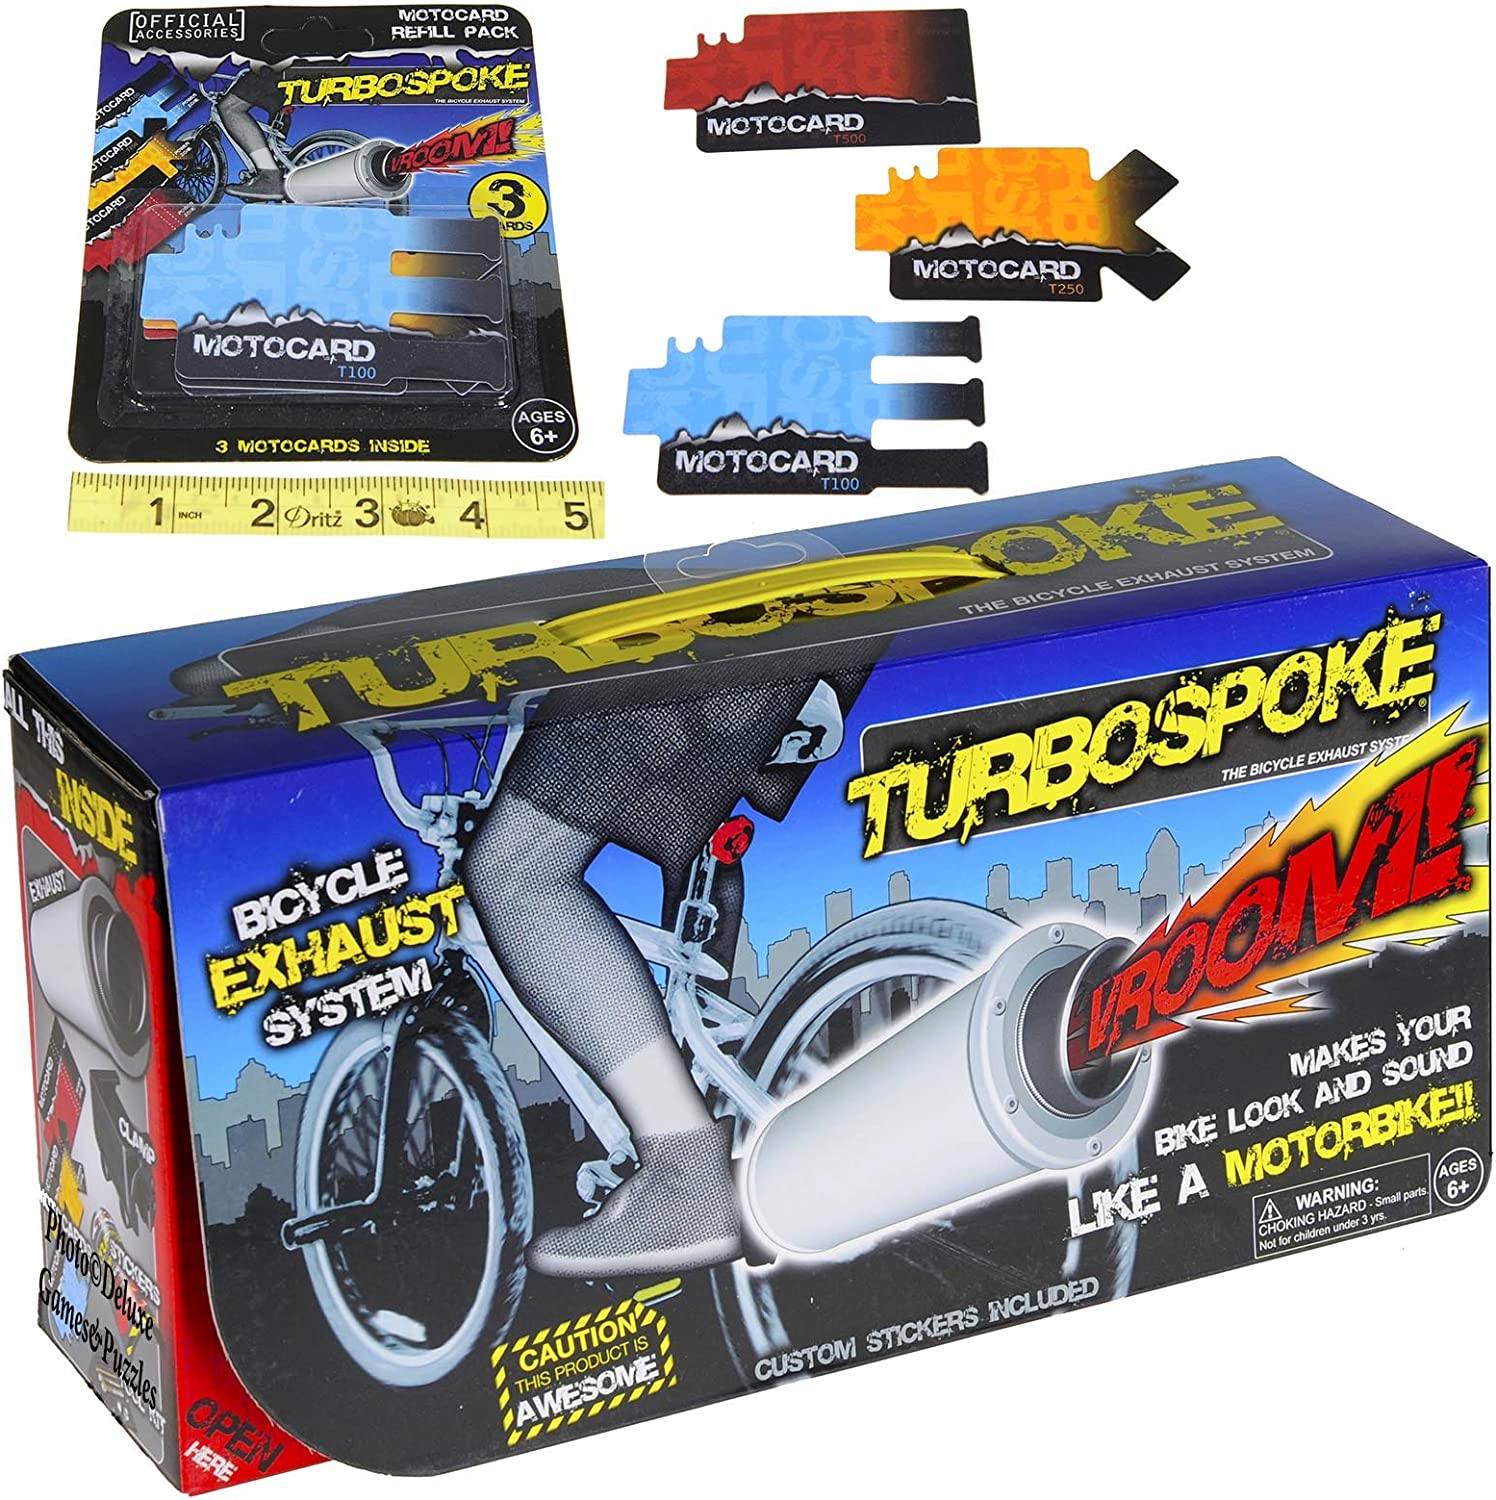 TurboSpoke Bicycle Exhaust System AddOn Accessory _ with BONUS MotoCard Refill 3Pack _ Bundle